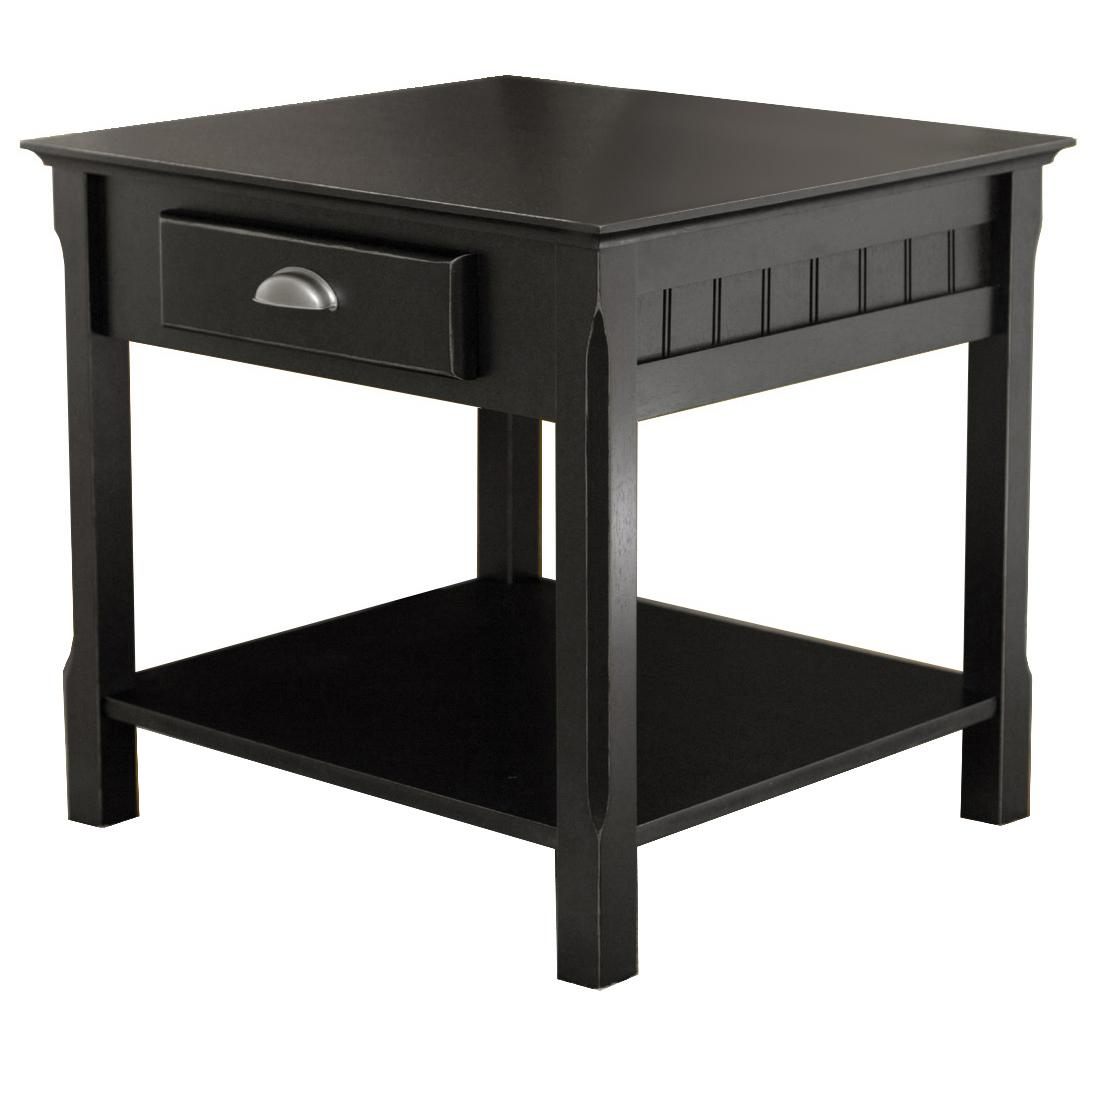 36 Inch Accent Table - 08b914c4-36da-4baf-8a5c-5fb658e15b3d_Amazing 36 Inch Accent Table - 08b914c4-36da-4baf-8a5c-5fb658e15b3d  Picture_761833.jpg